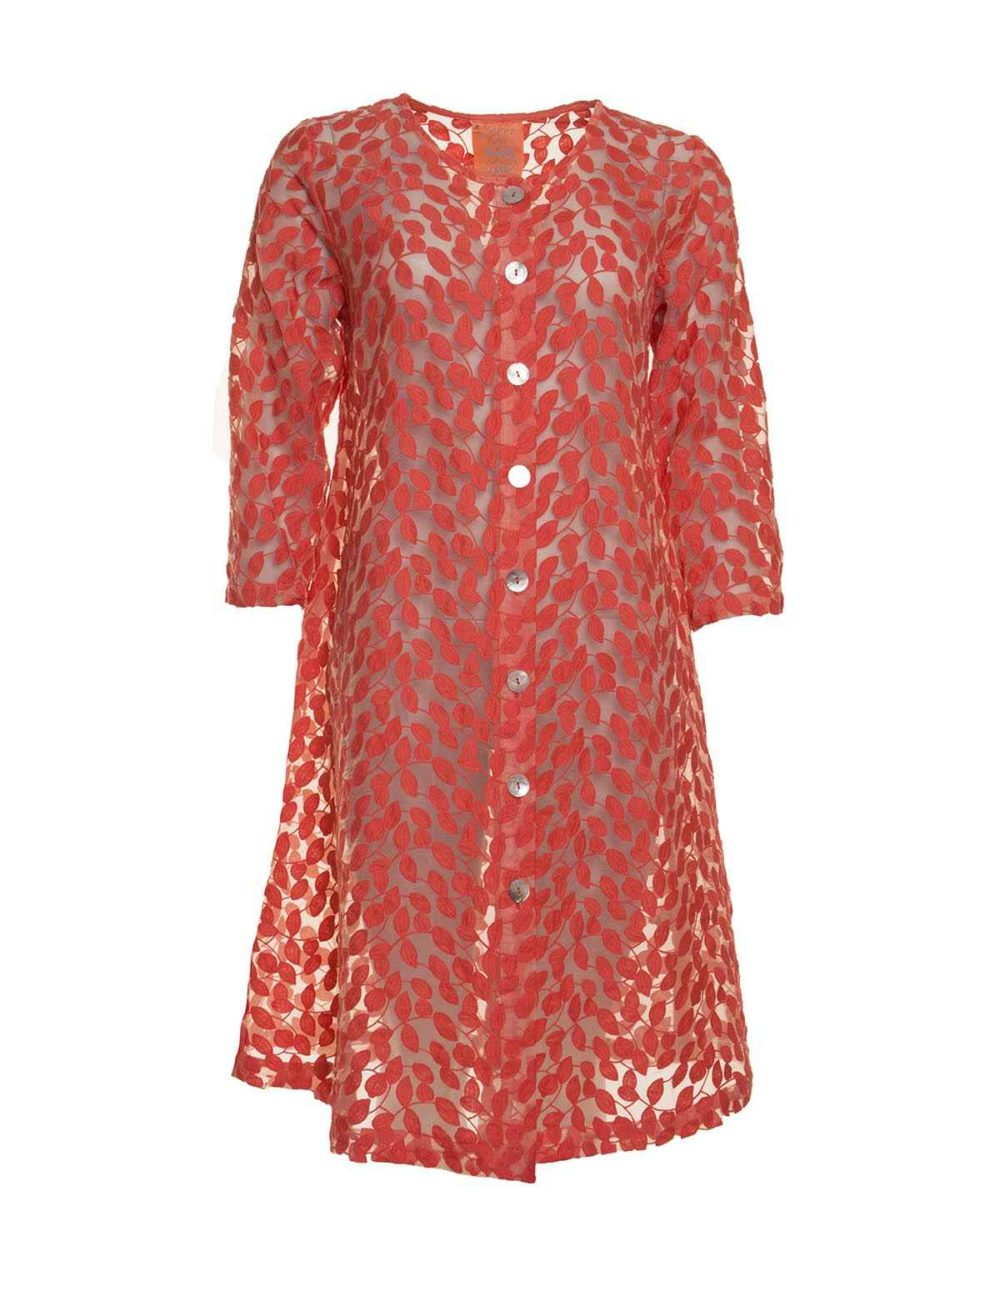 Leaf Embroidery Coat Out of Xile Katie Kerr Women's Clothing